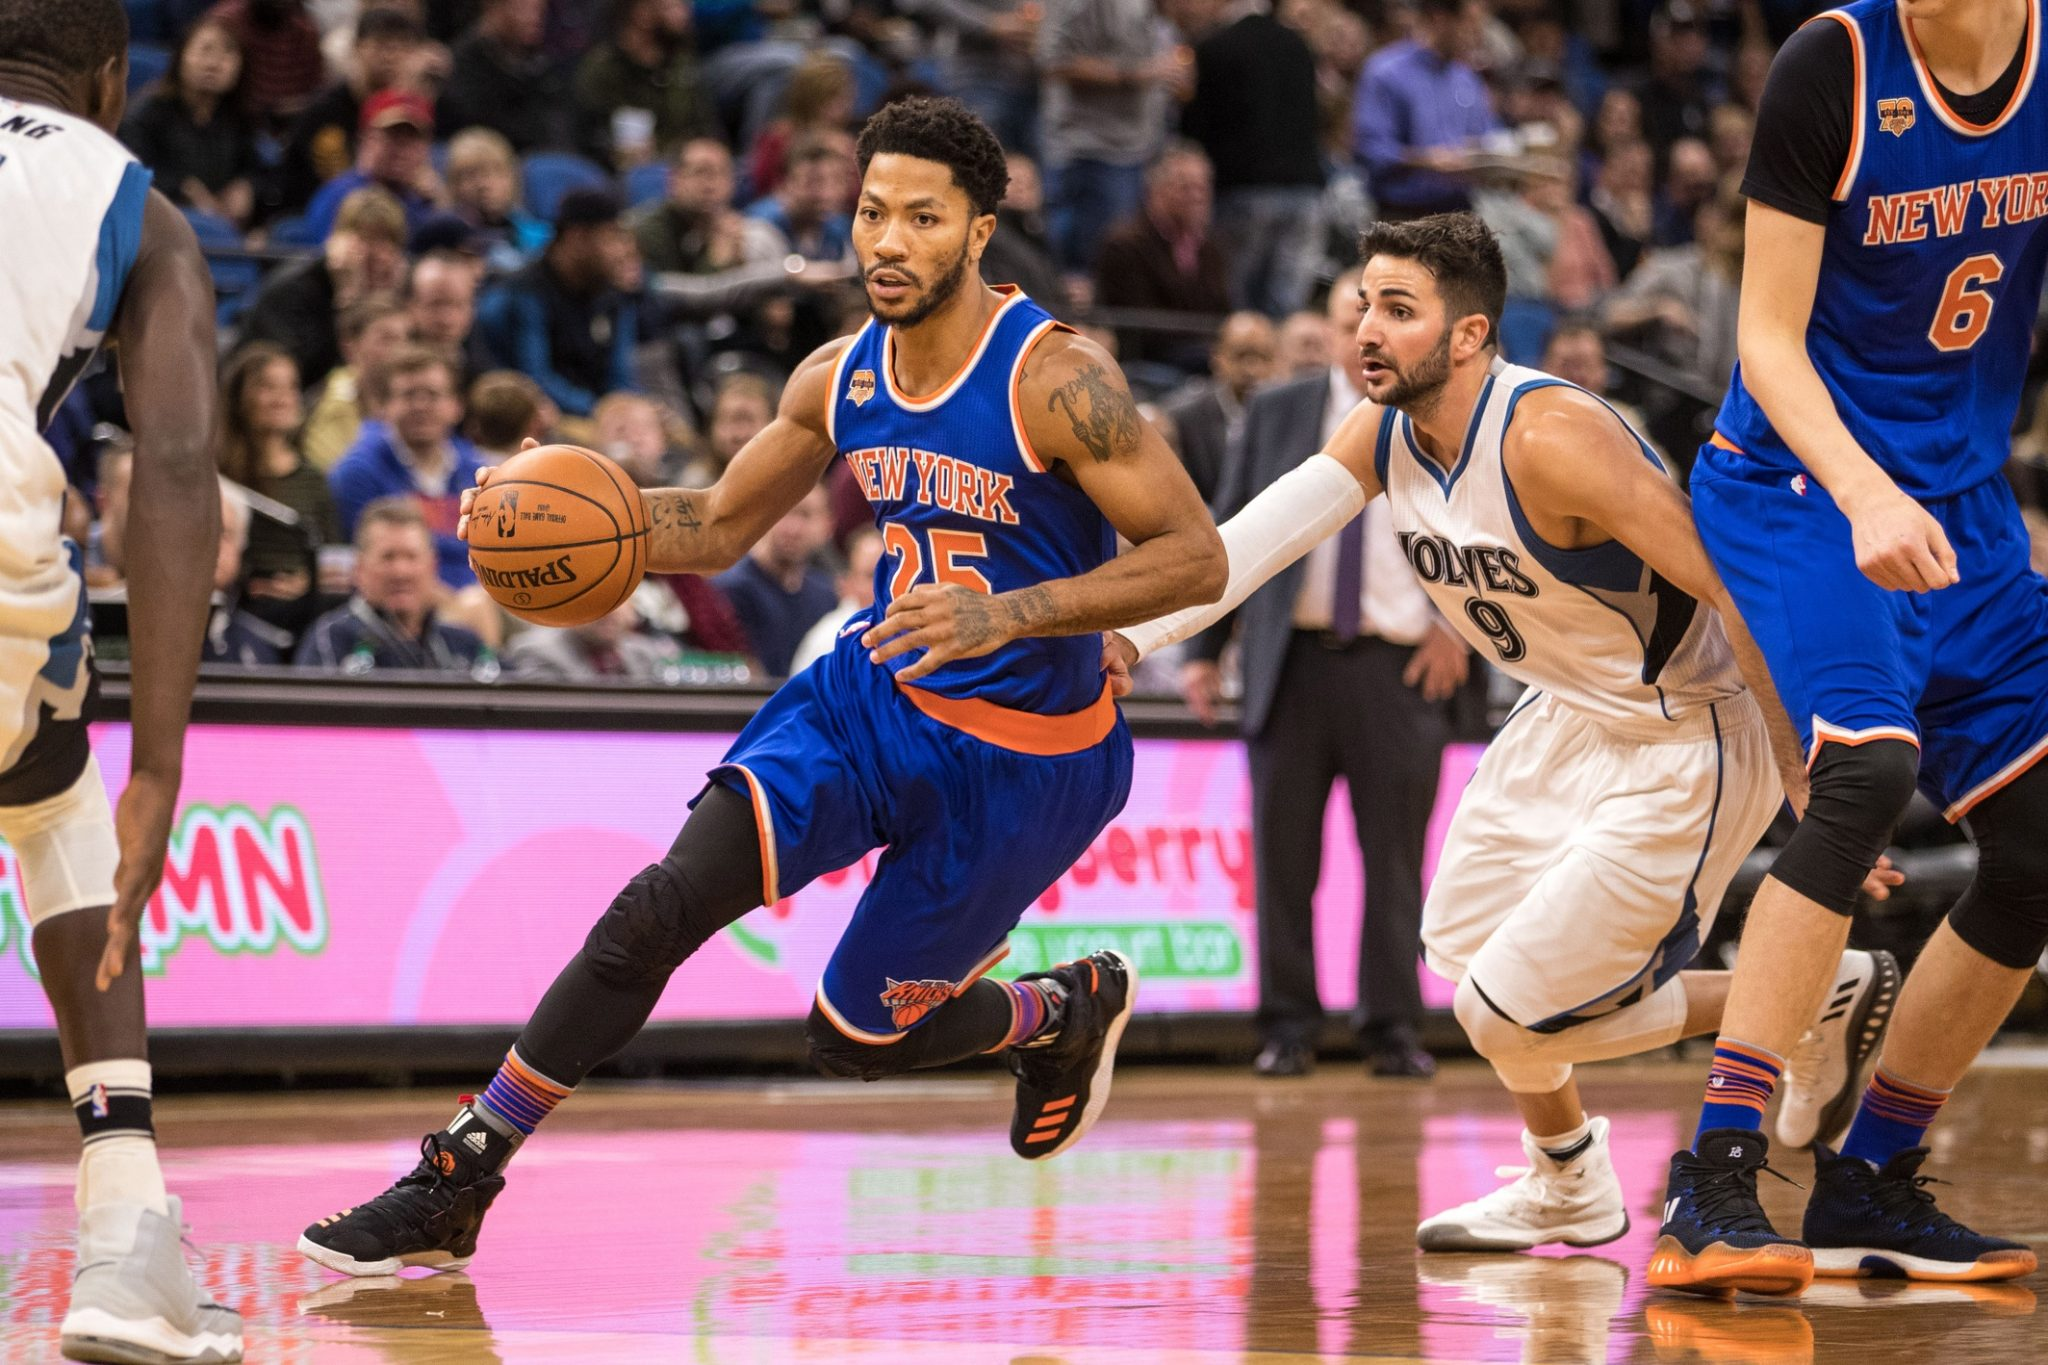 New York Knicks' Derrick Rose: 'I want to play the rest of my life here'